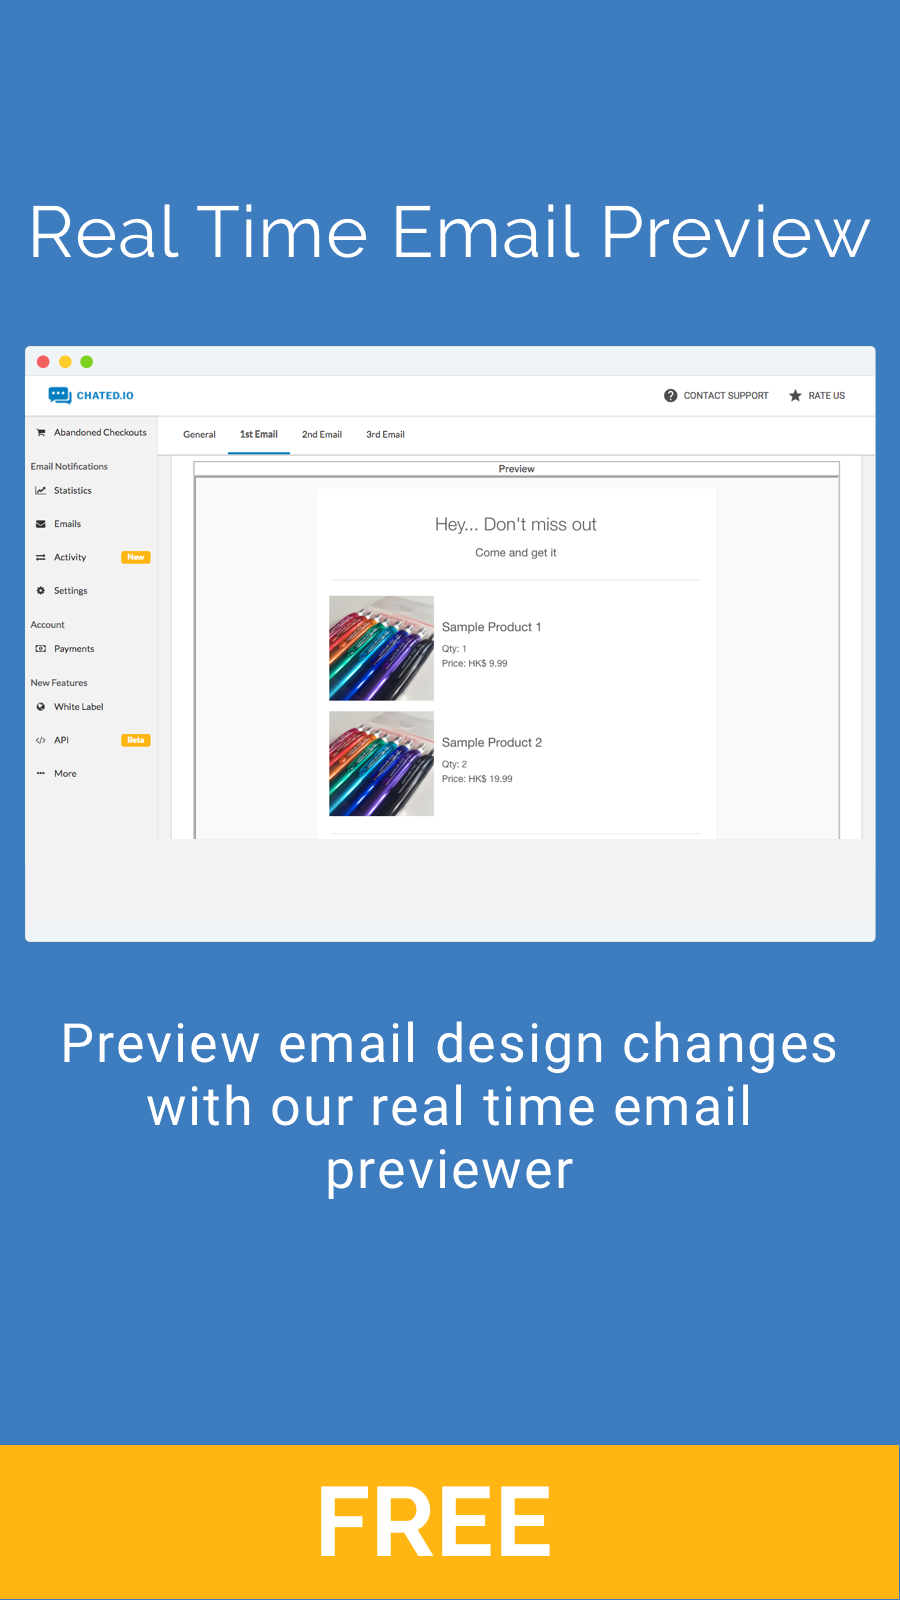 Real Time Email Preview